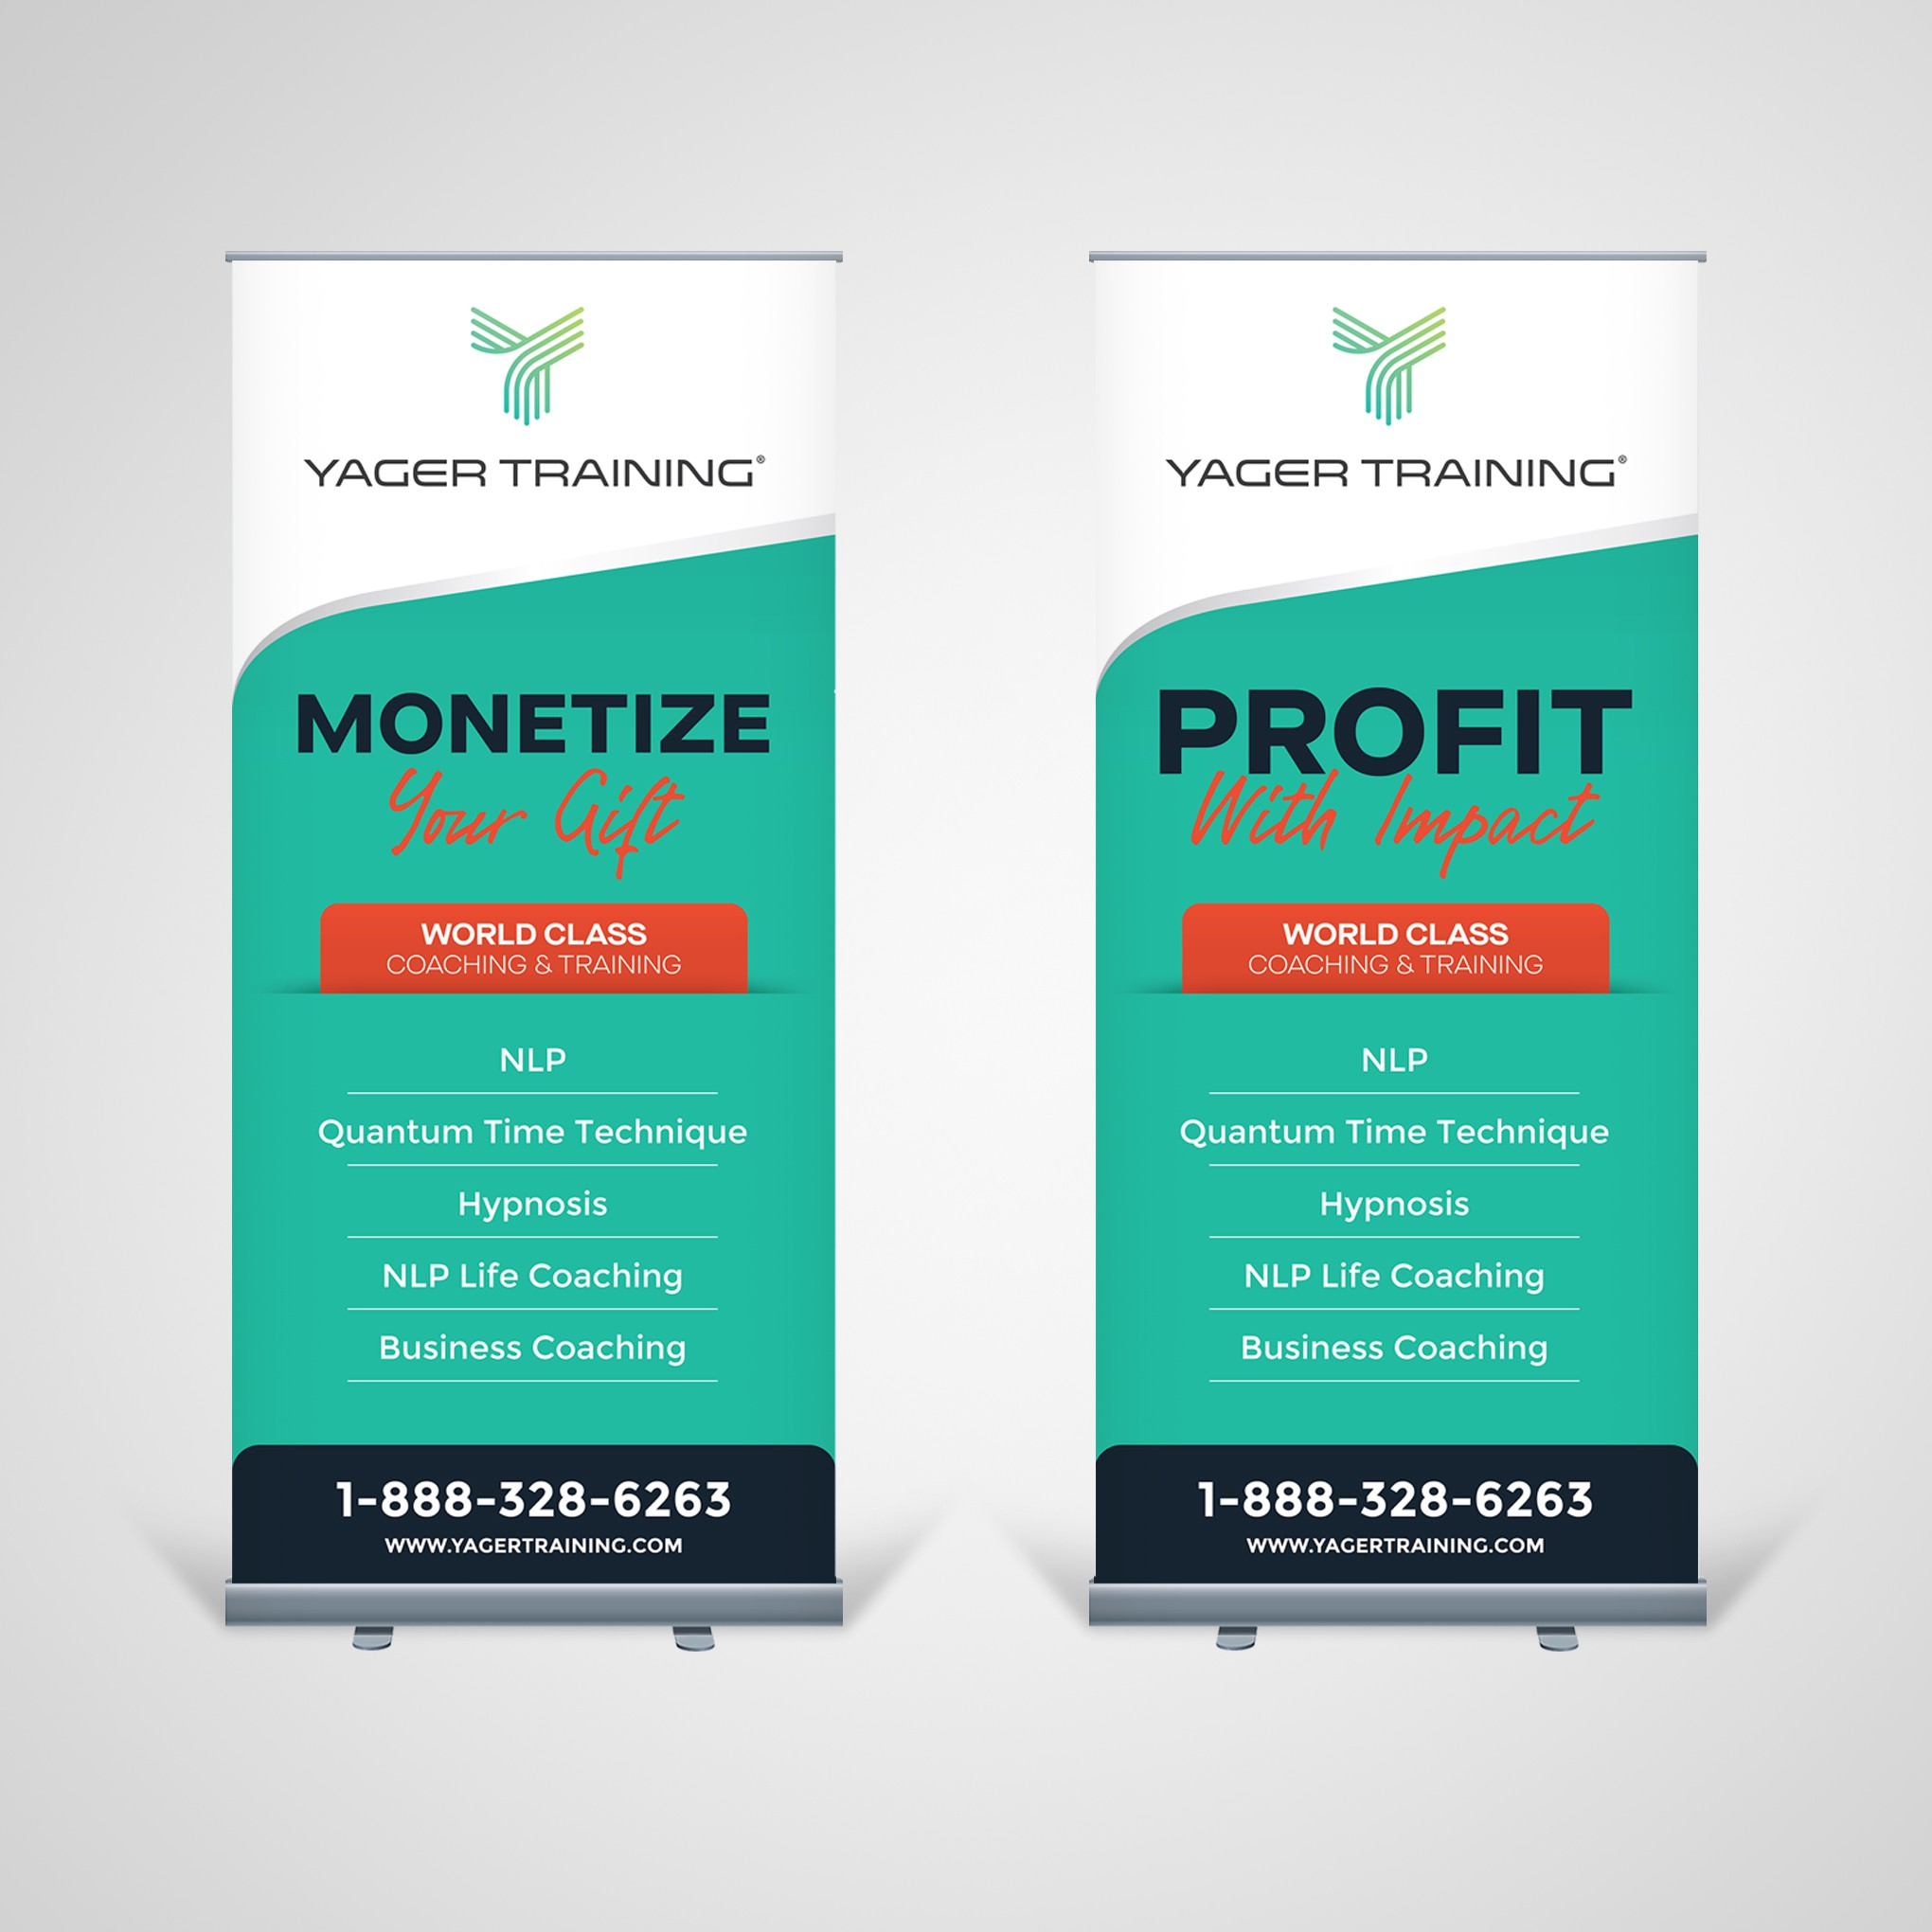 Personal Development Co needs updated banner design to match re-brand